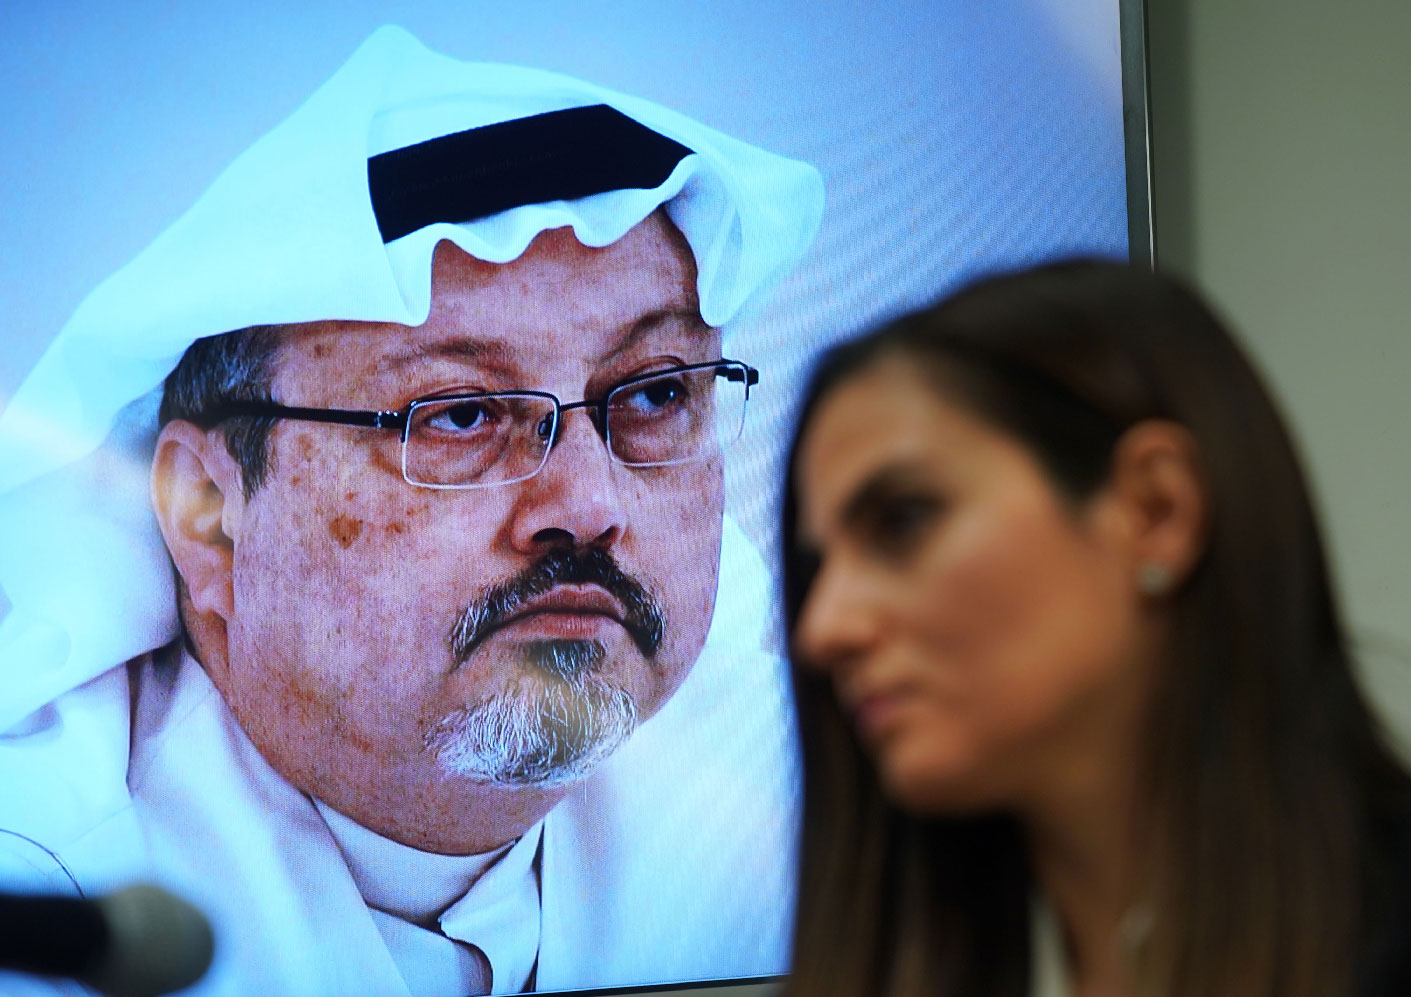 Sherine Tadros, head of New York (UN) Office of Amnesty International, speaks in front of a picture of Jamal Khashoggi during a news conference at the United Nations.